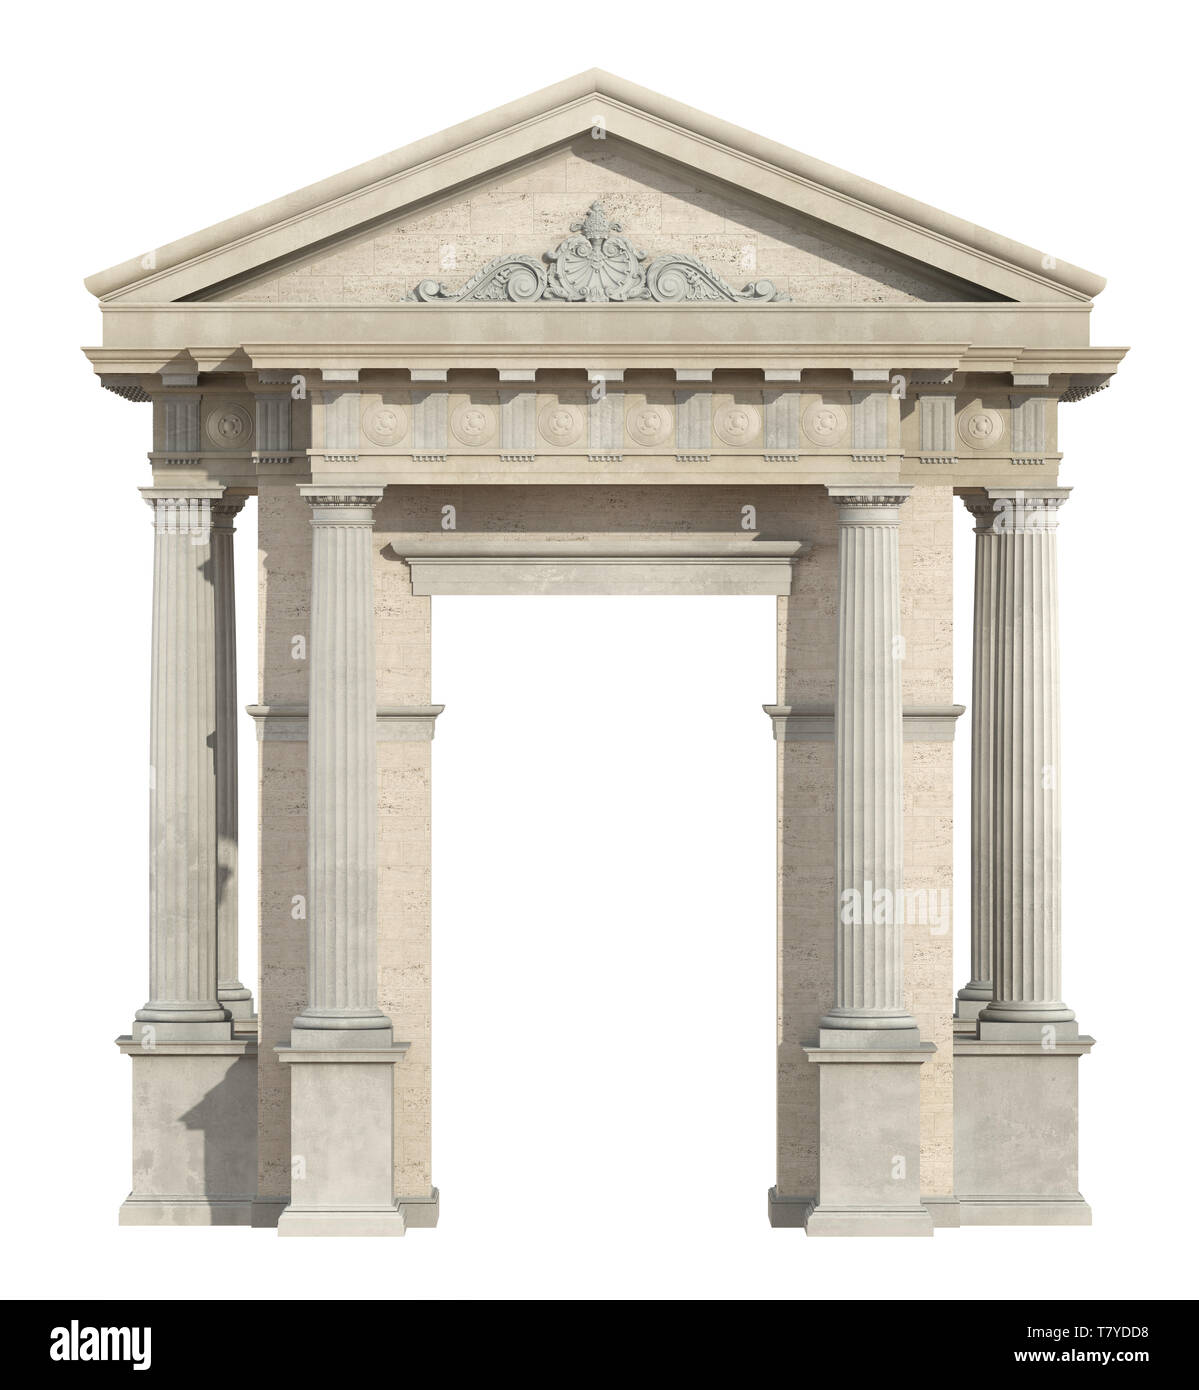 Portal in neoclassical style isolated on white with doric column and tympanon - 3d rendering - Stock Image